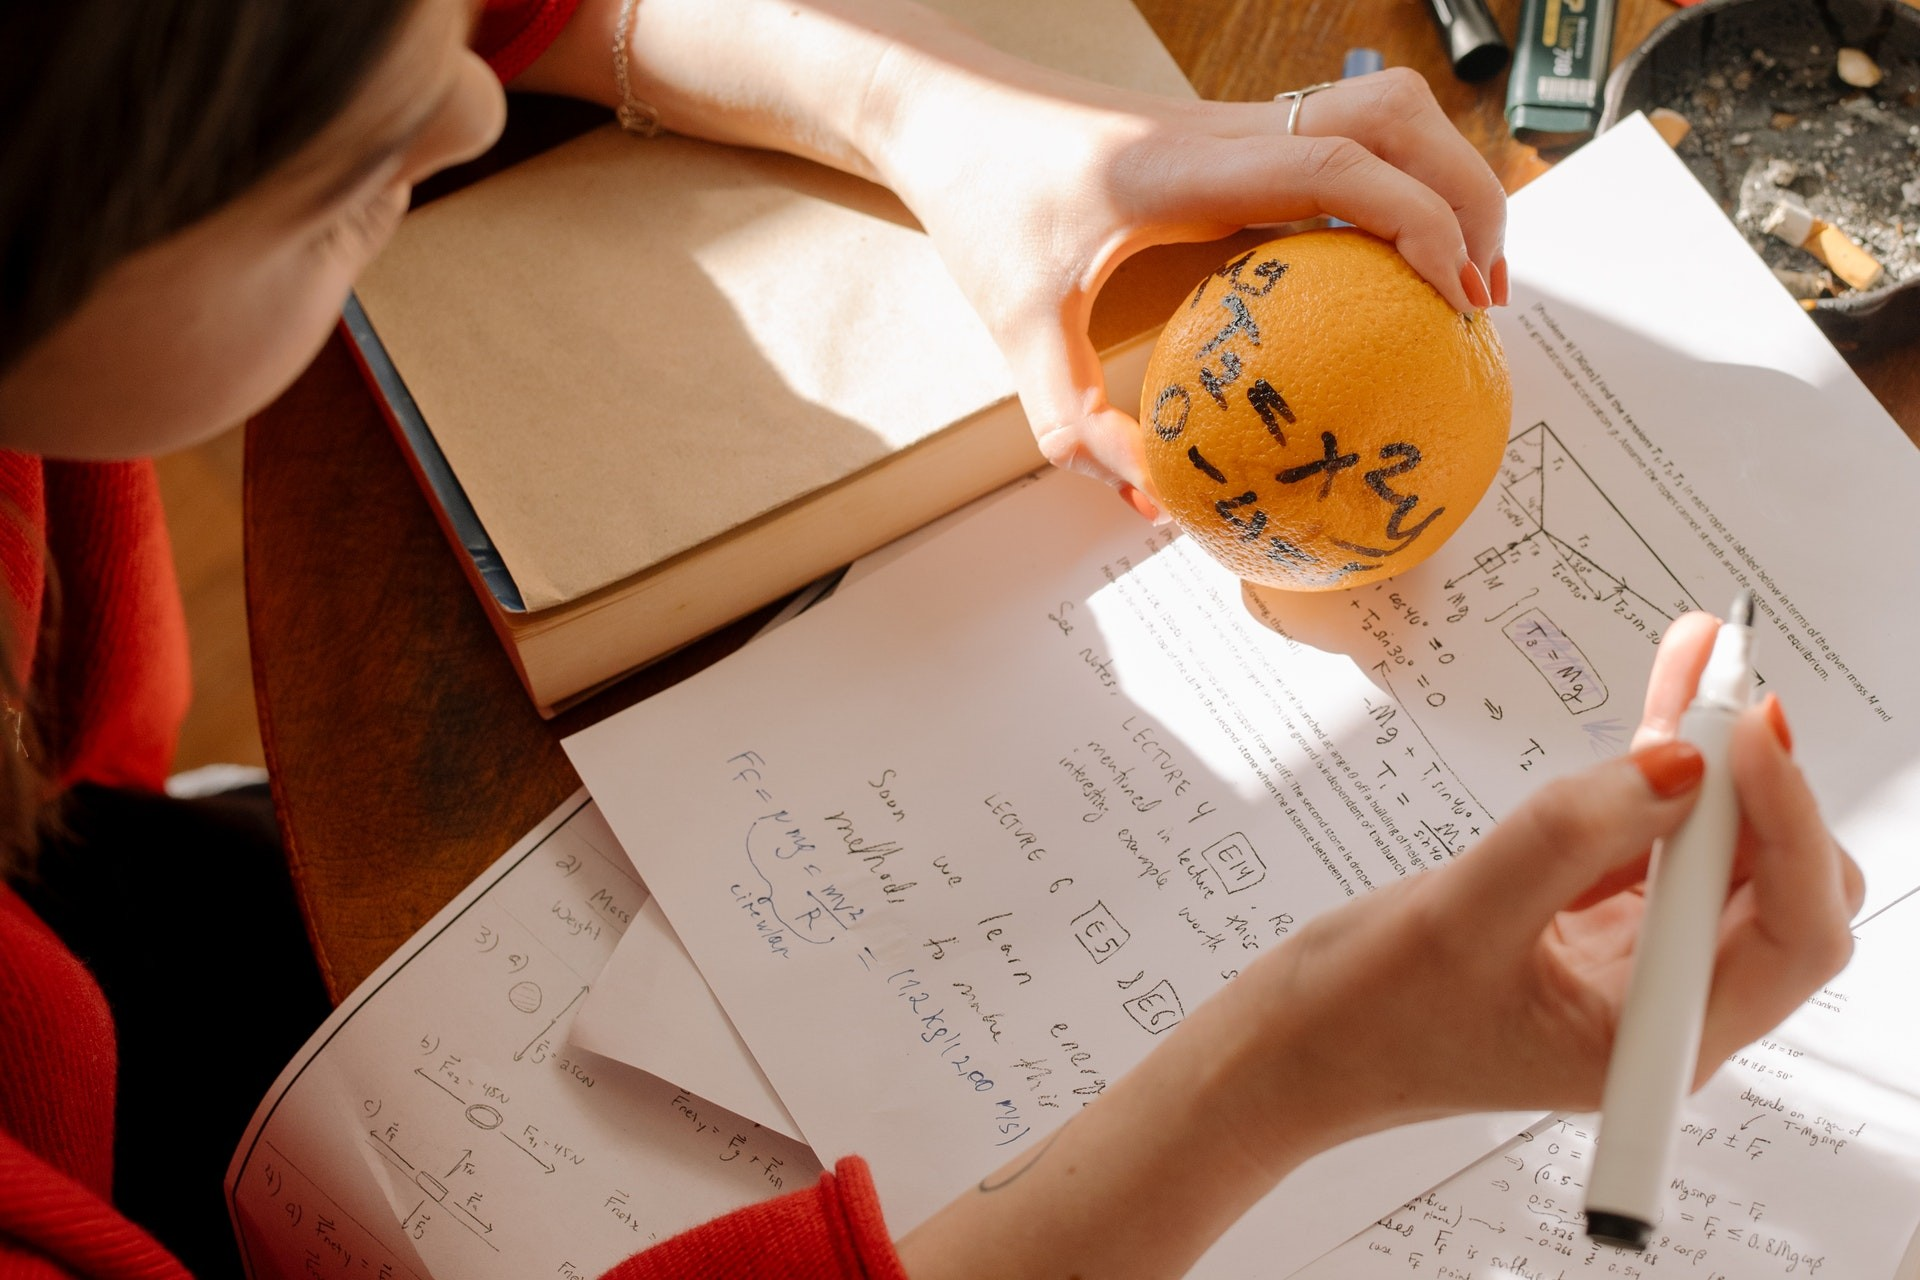 A student holds an orange with an equation written on it while working on a math writing prompt.